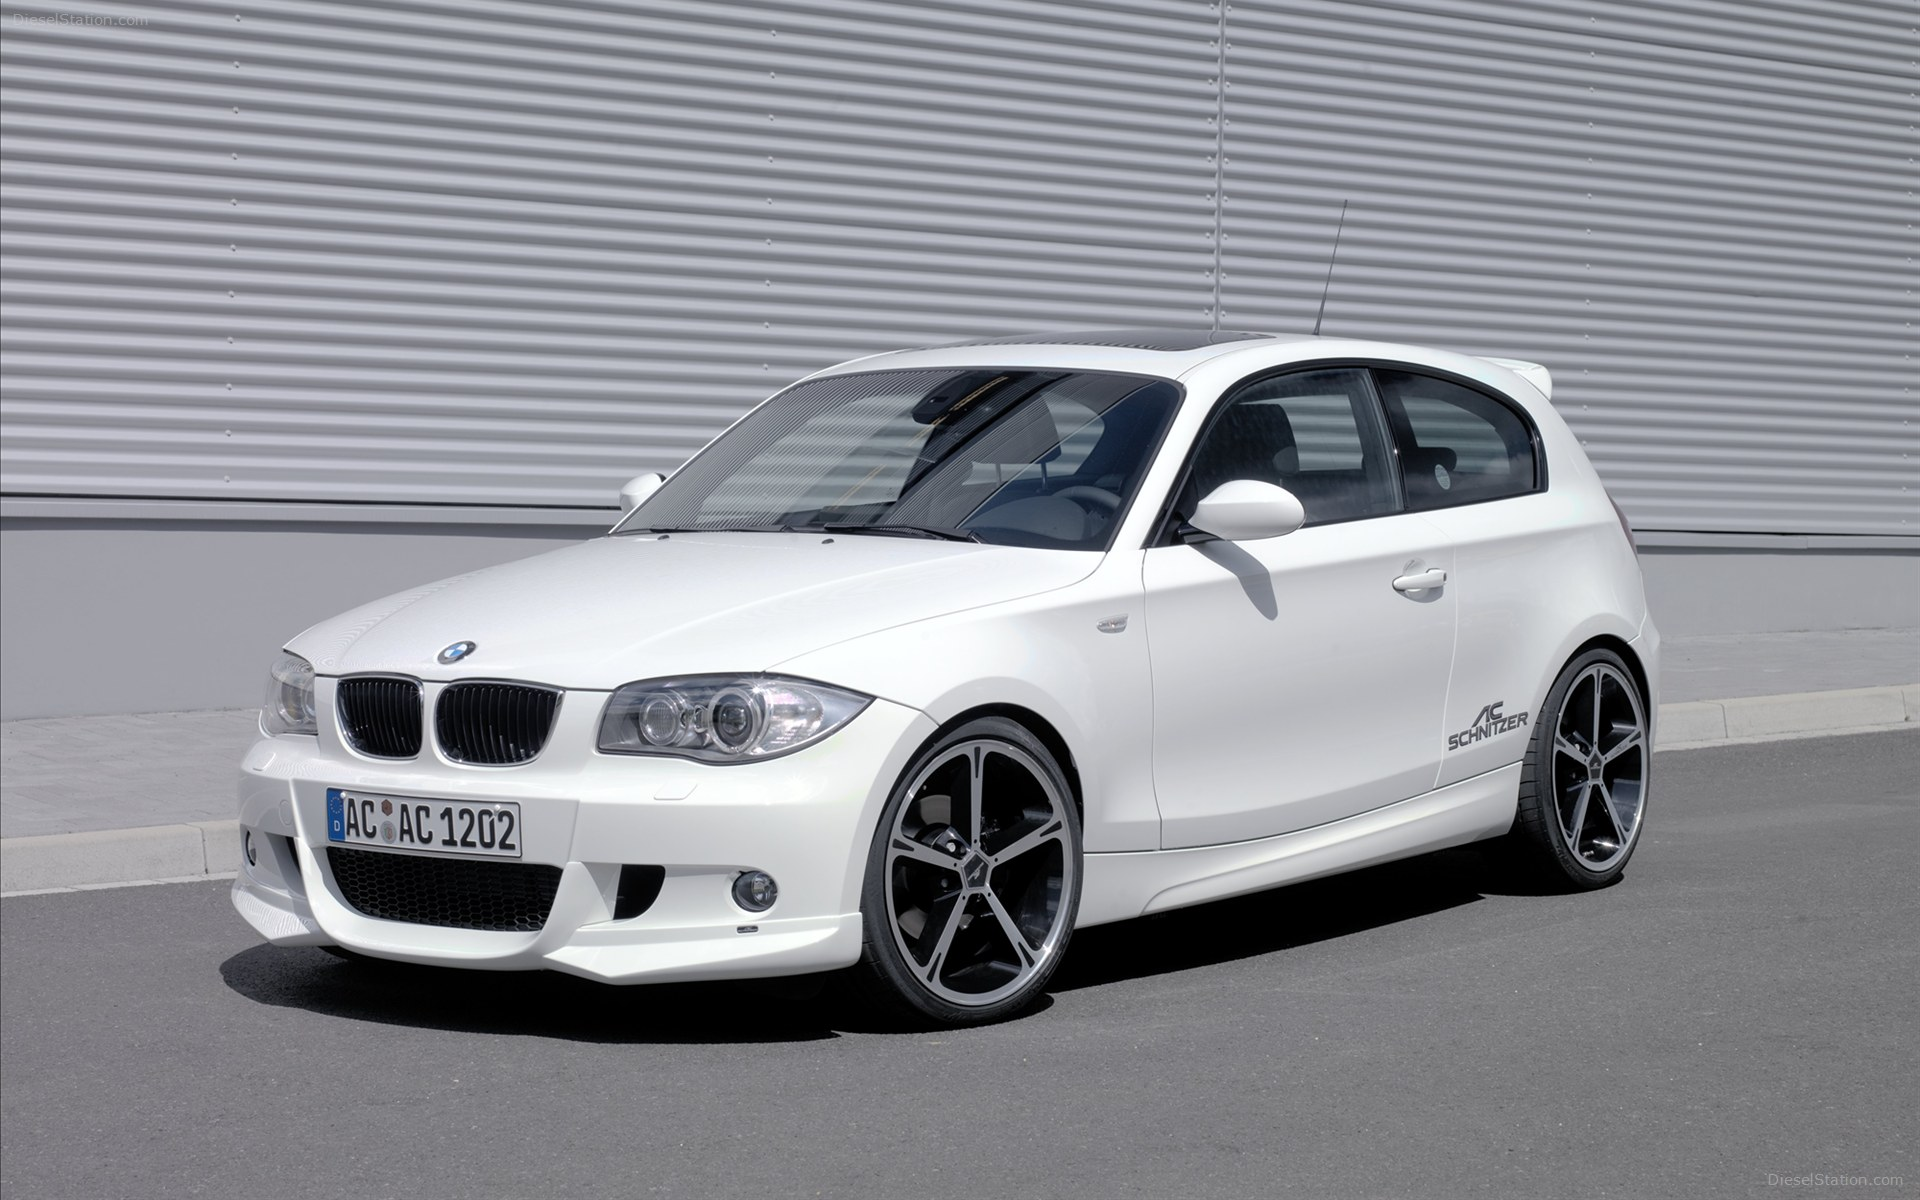 Bmw 120 2004 Review Amazing Pictures And Images Look